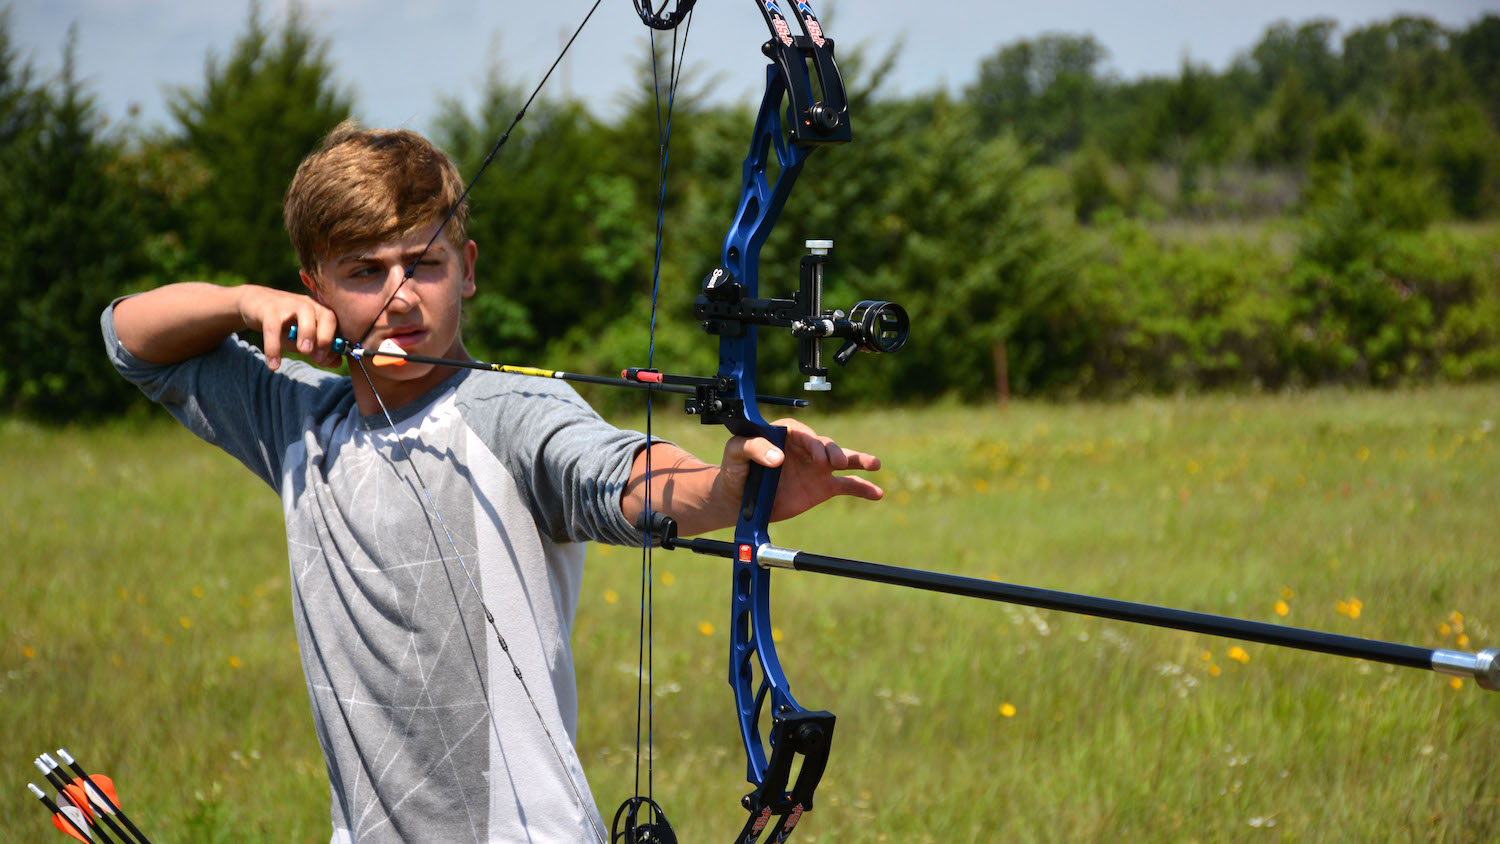 The true aim of NRA archery grants? Supporting American youths while preserving traditions